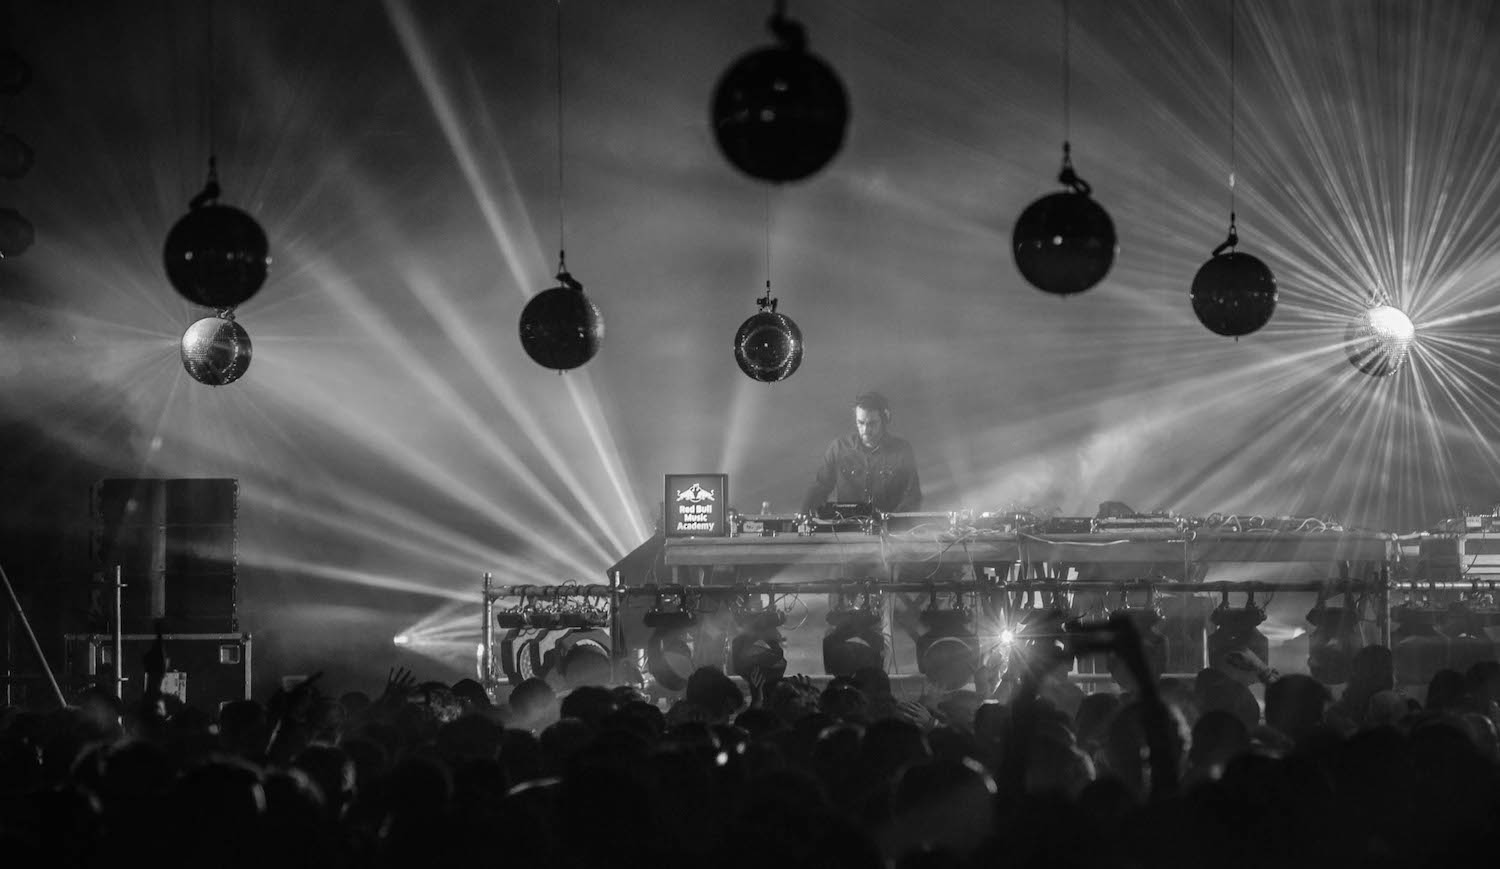 DJ Deep performs at Red Bull Music Academy stage during Nuits sonores festival in Lyon, France on May 15th 2015